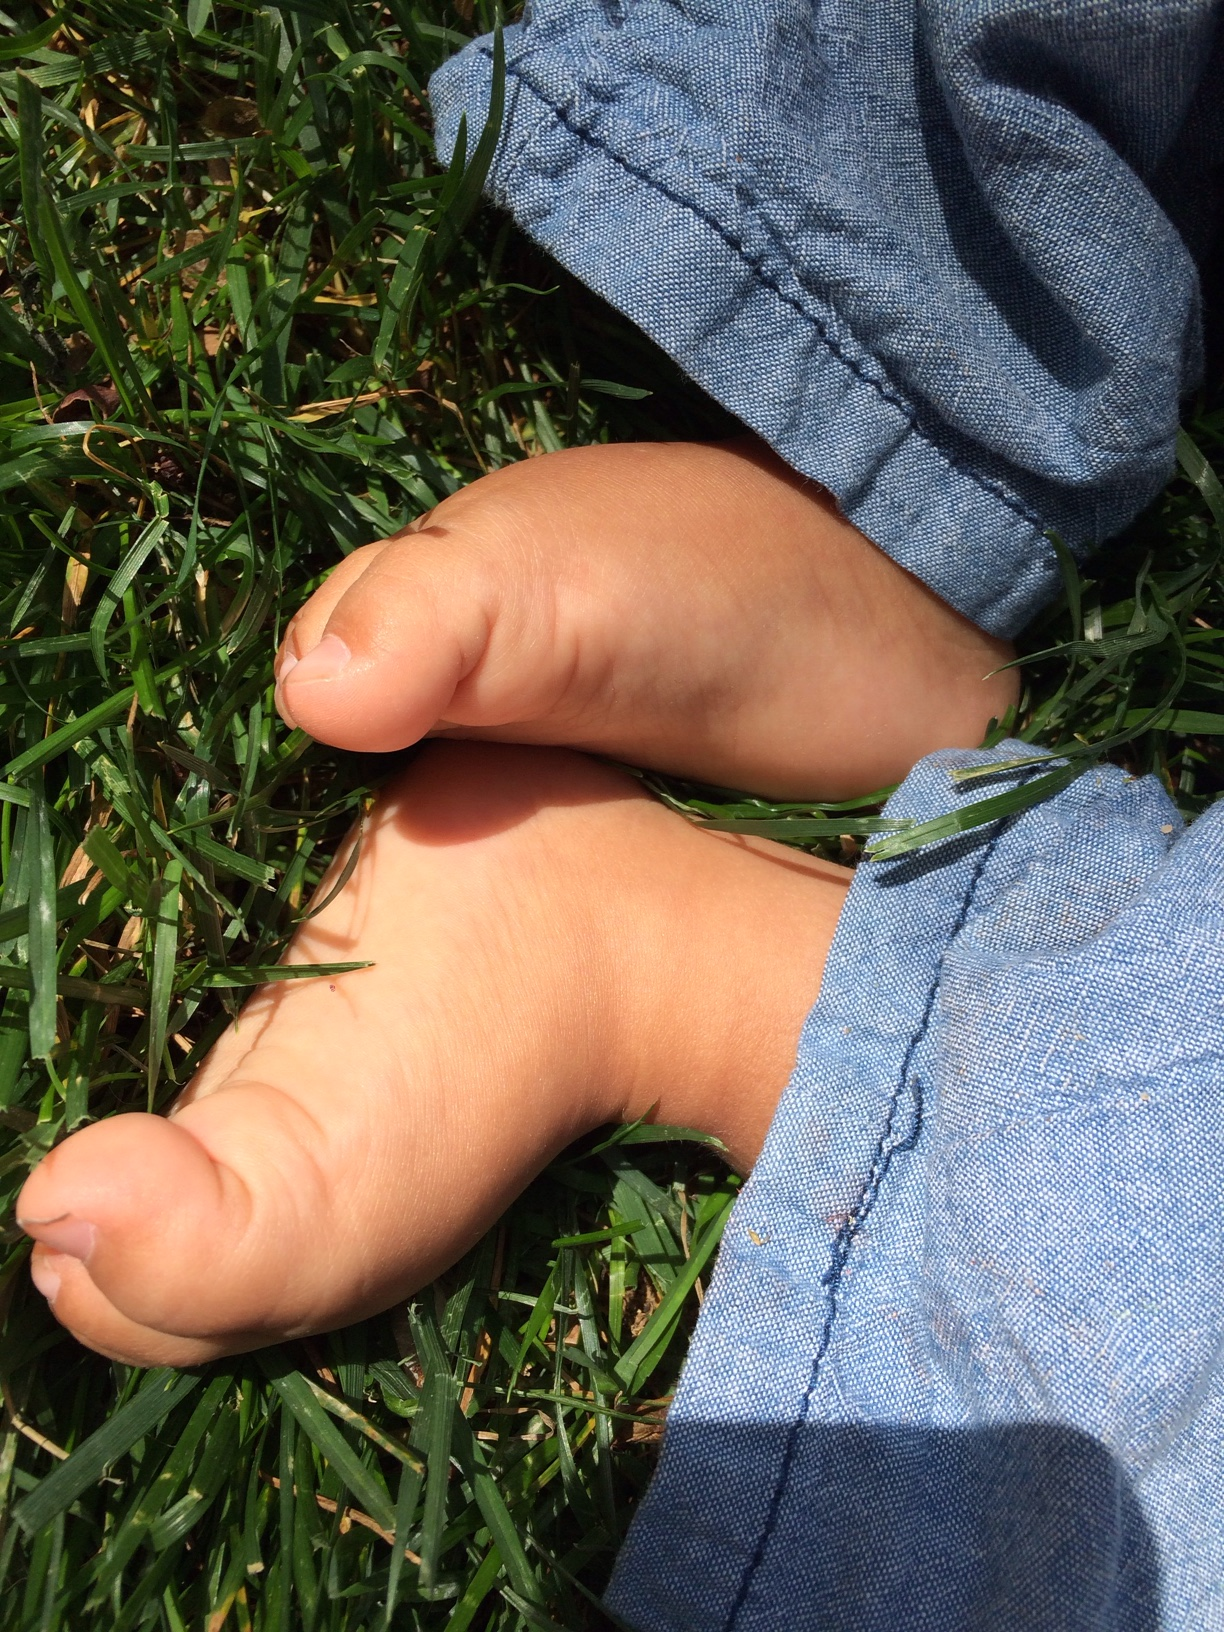 Grass and toes